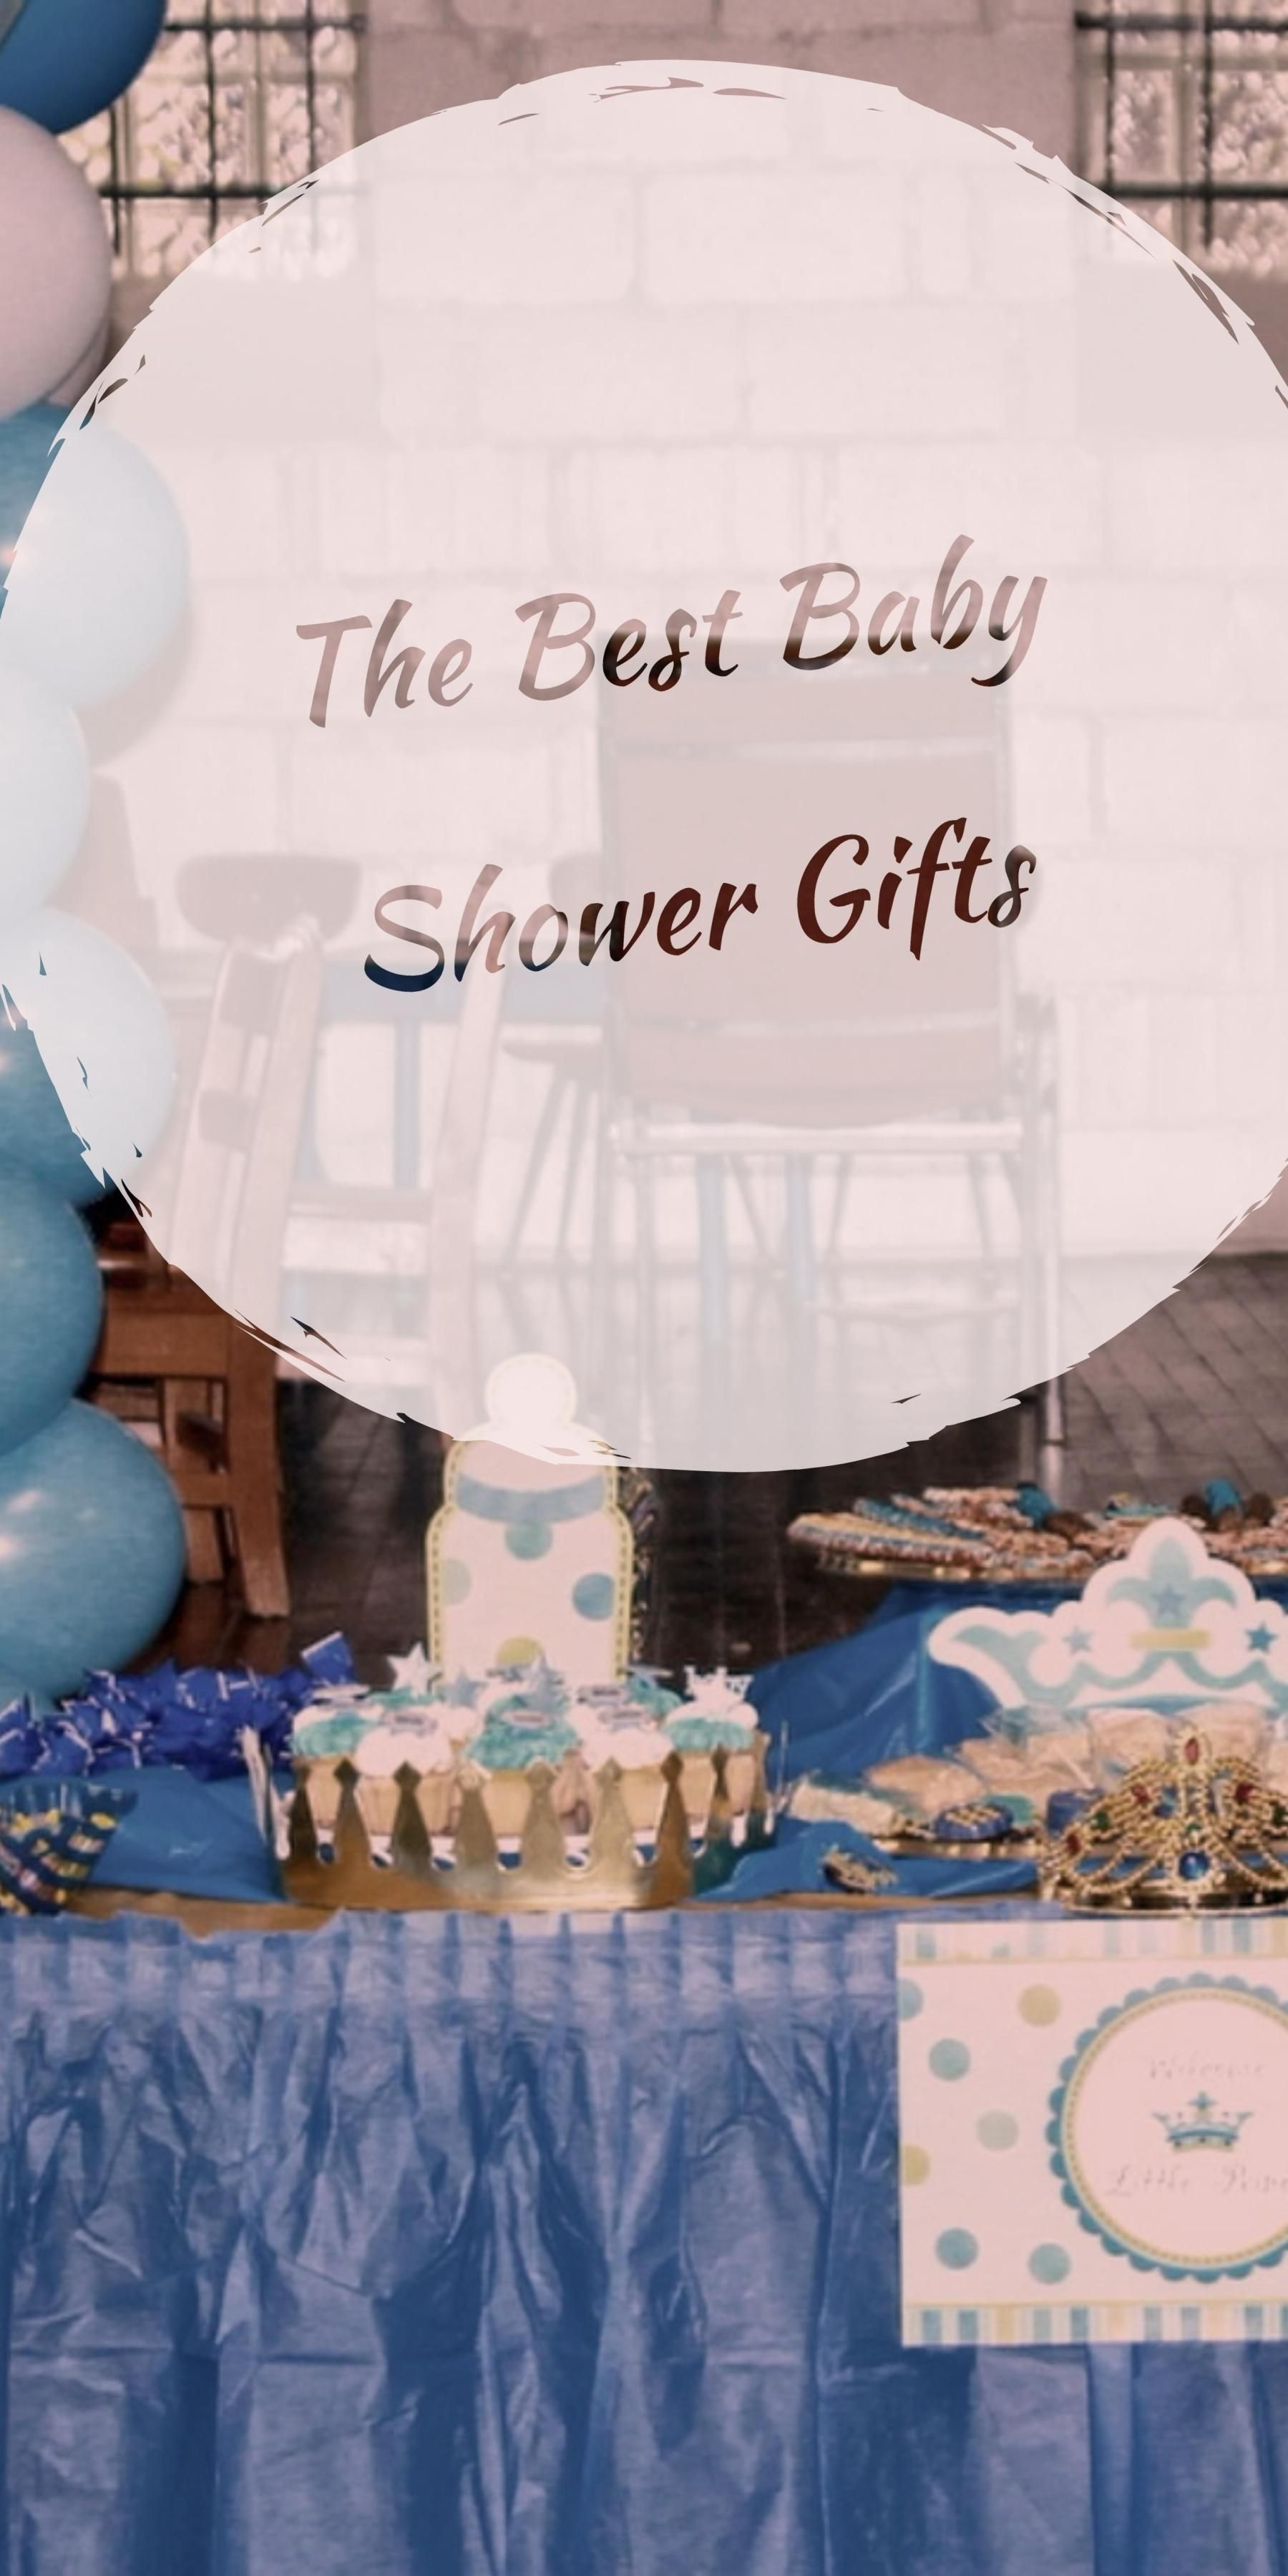 Full Size of Baby Shower:93+ Superb Best Baby Shower Gifts Picture Concepts Best Baby Shower Gifts That Stand Out From The Crowd Babies Gift The Best Baby Shower Gifts That You Can Get An Expectant Mother